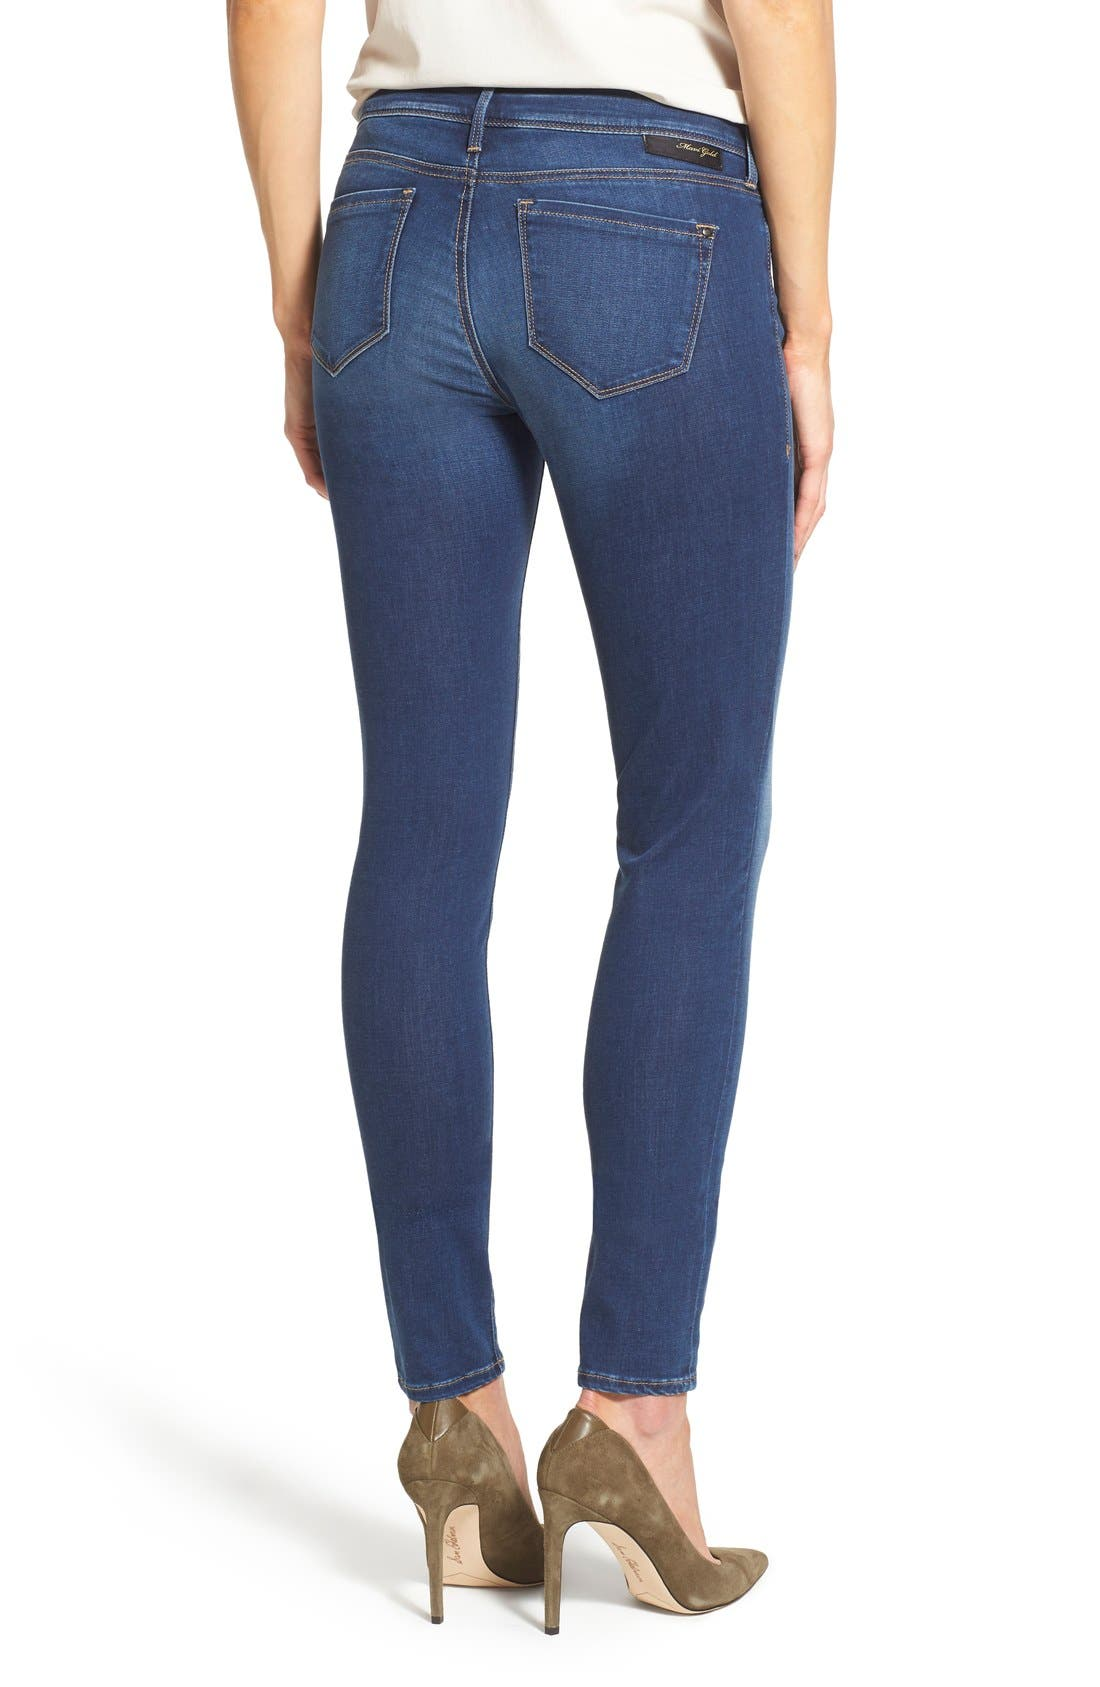 Gold 'Adriana' Stretch Super Skinny Jeans,                             Alternate thumbnail 2, color,                             401